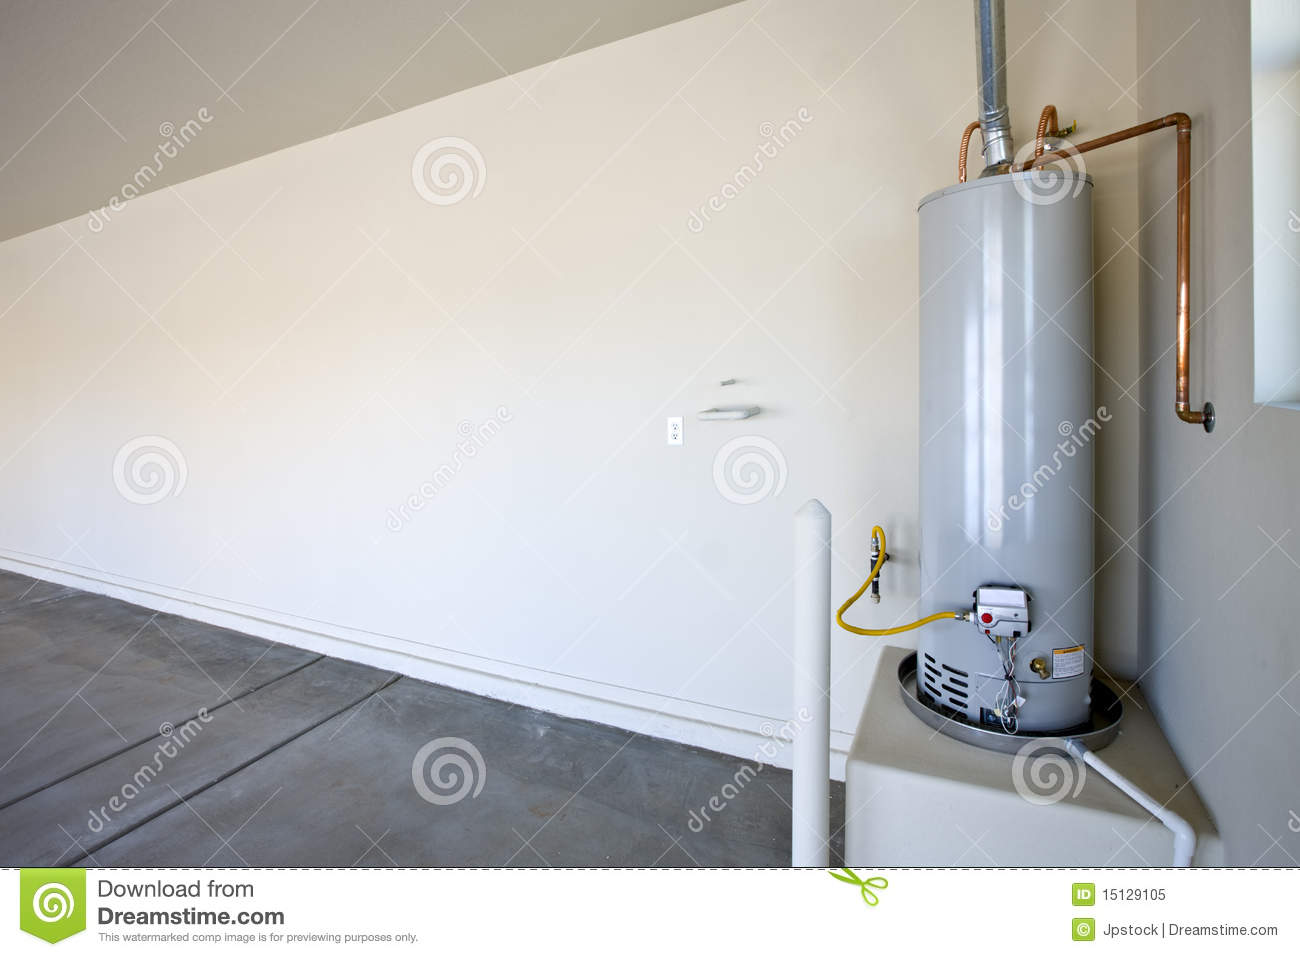 Hot Water Heater In A Garage Royalty Free Stock Photo   Image